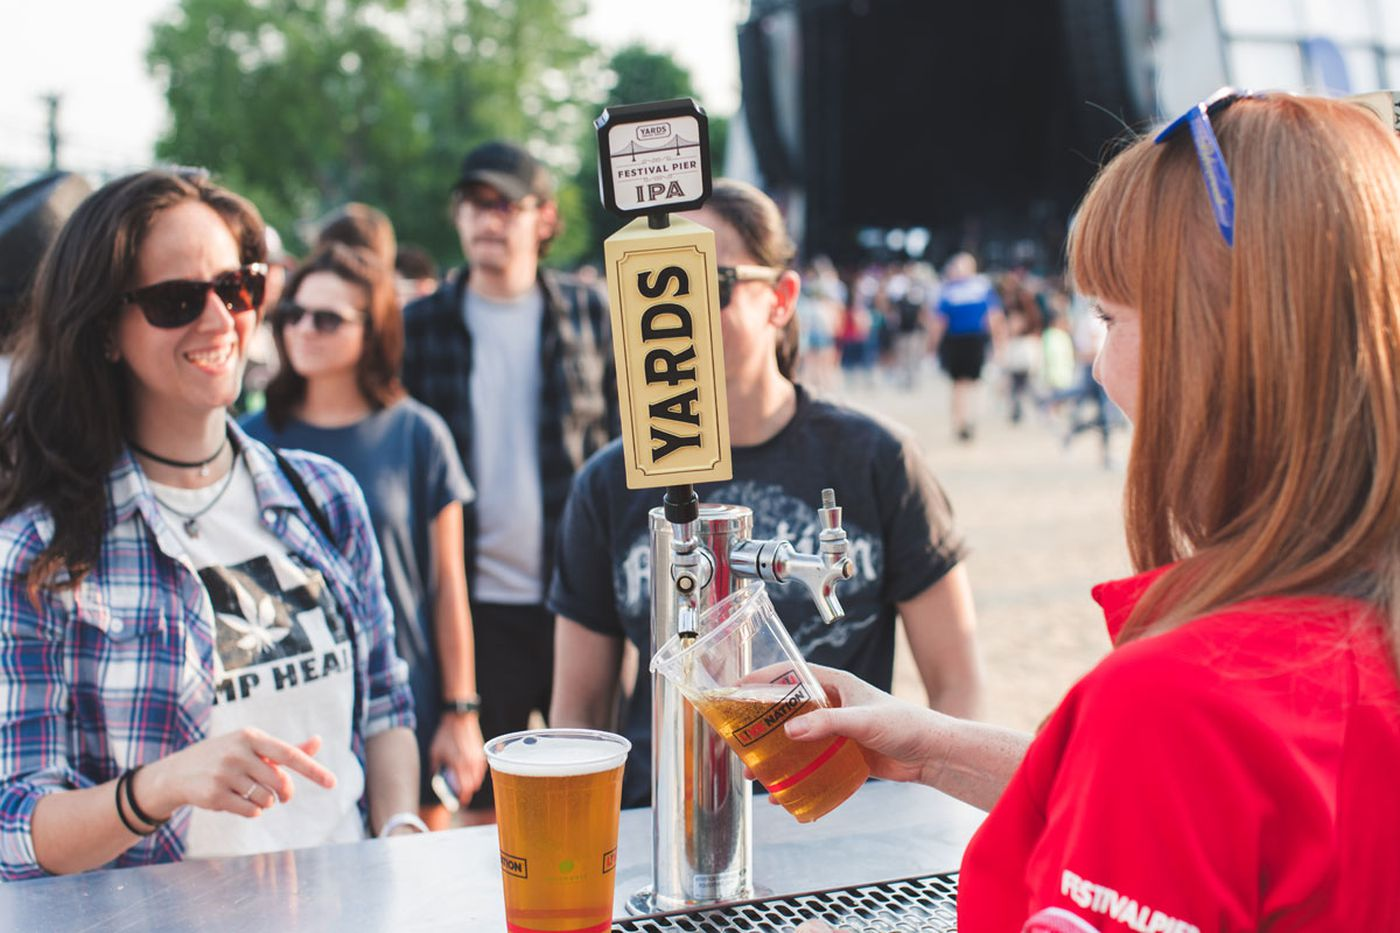 Yards makes a beer in honor of Festival Pier